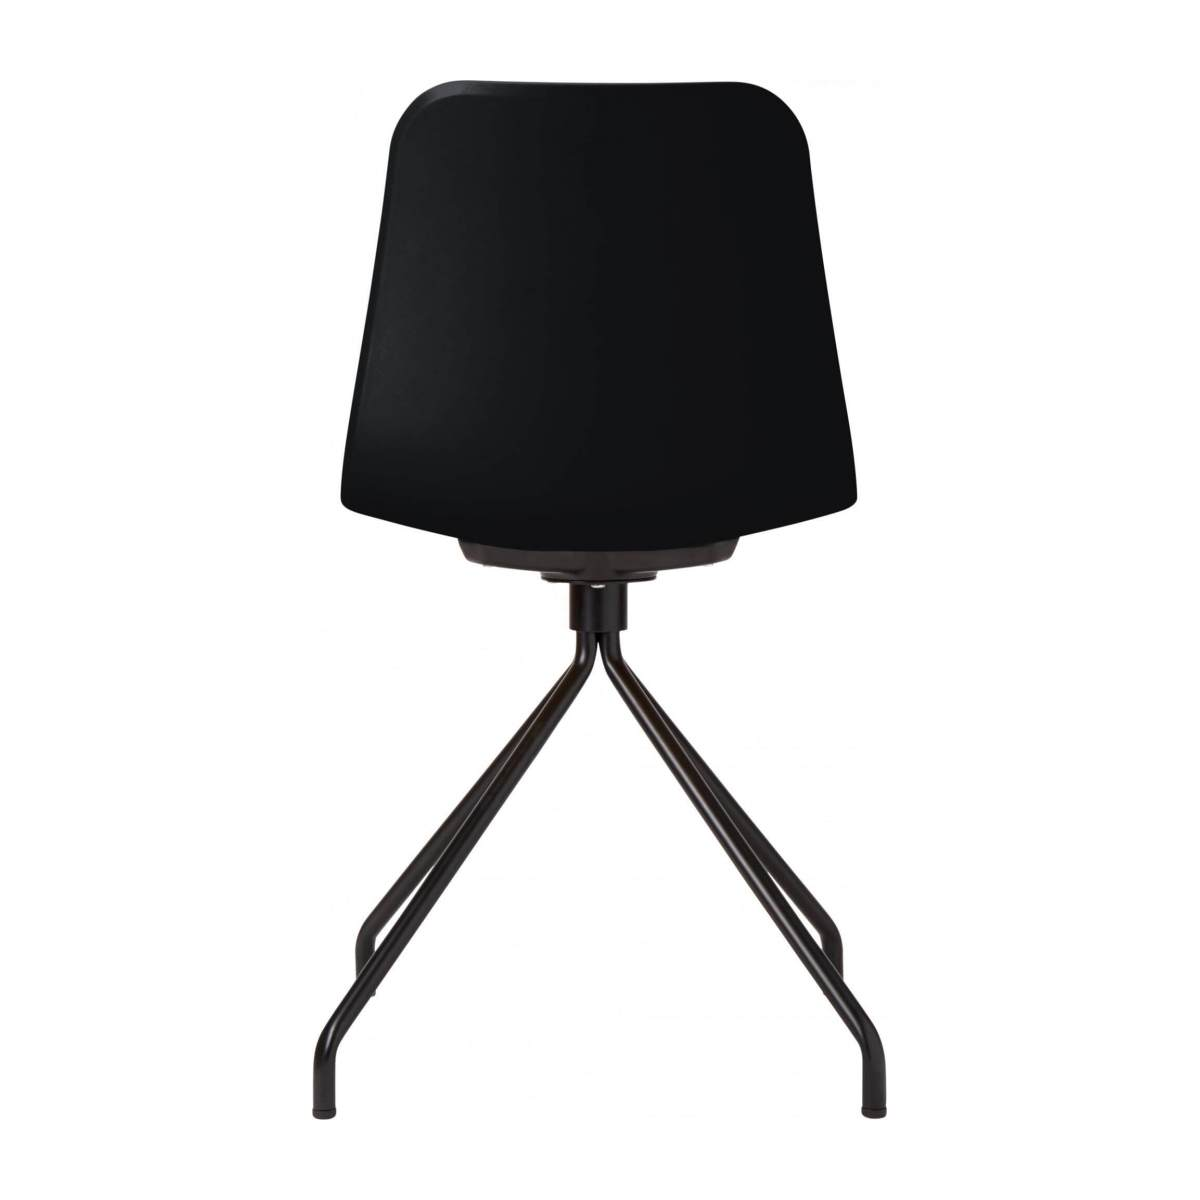 Black chair in polypropylene and lacquered steel legs n°3